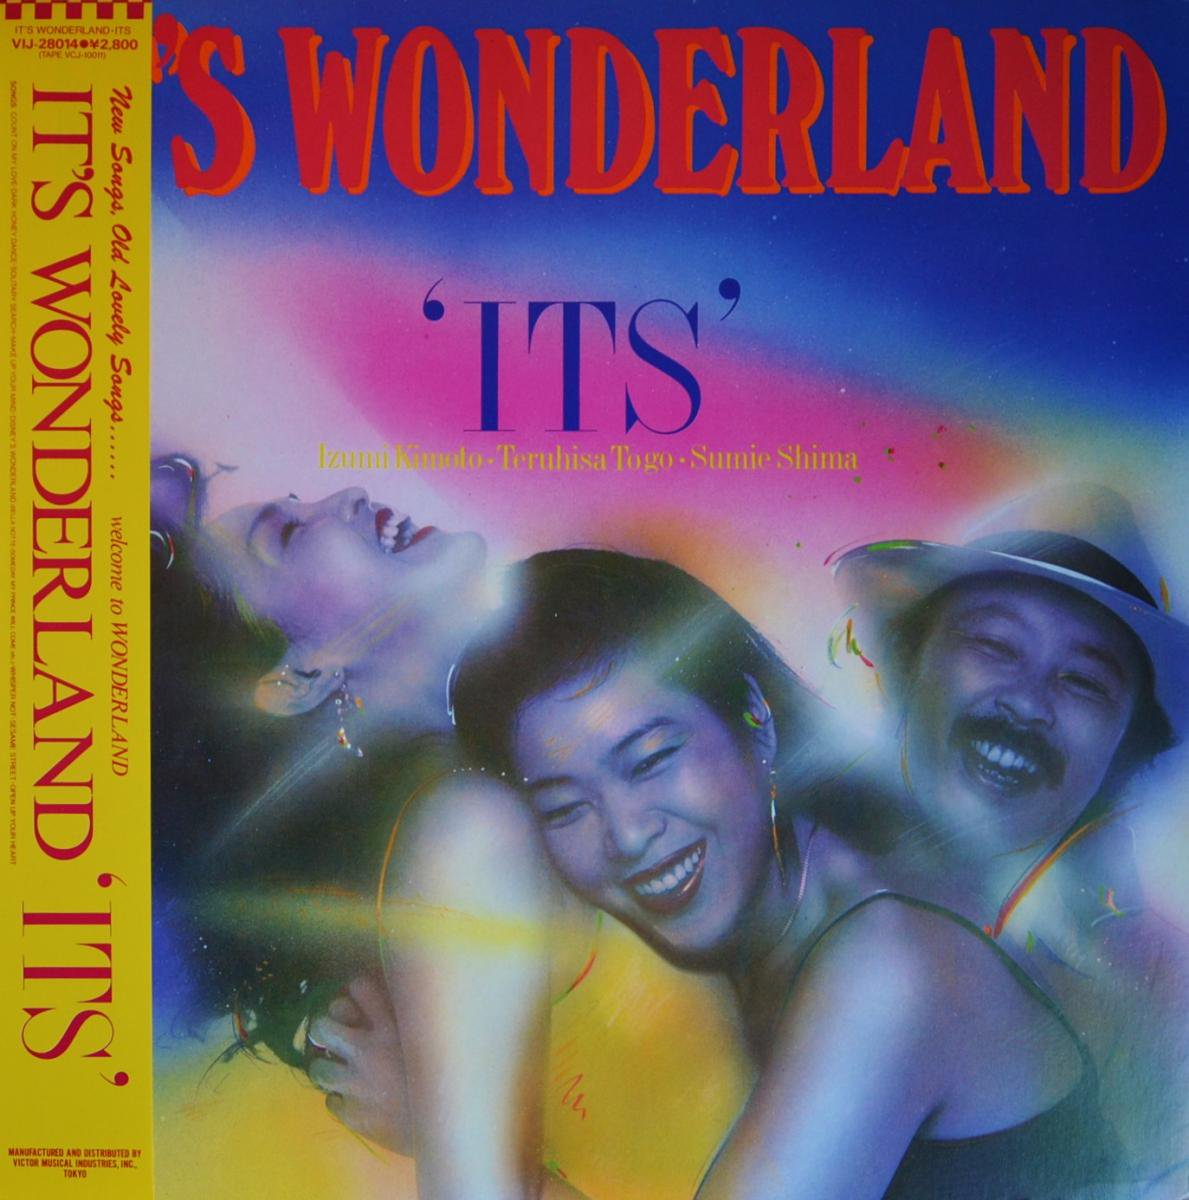 イッツ / ITS / IT'S WONDERLAND (LP)